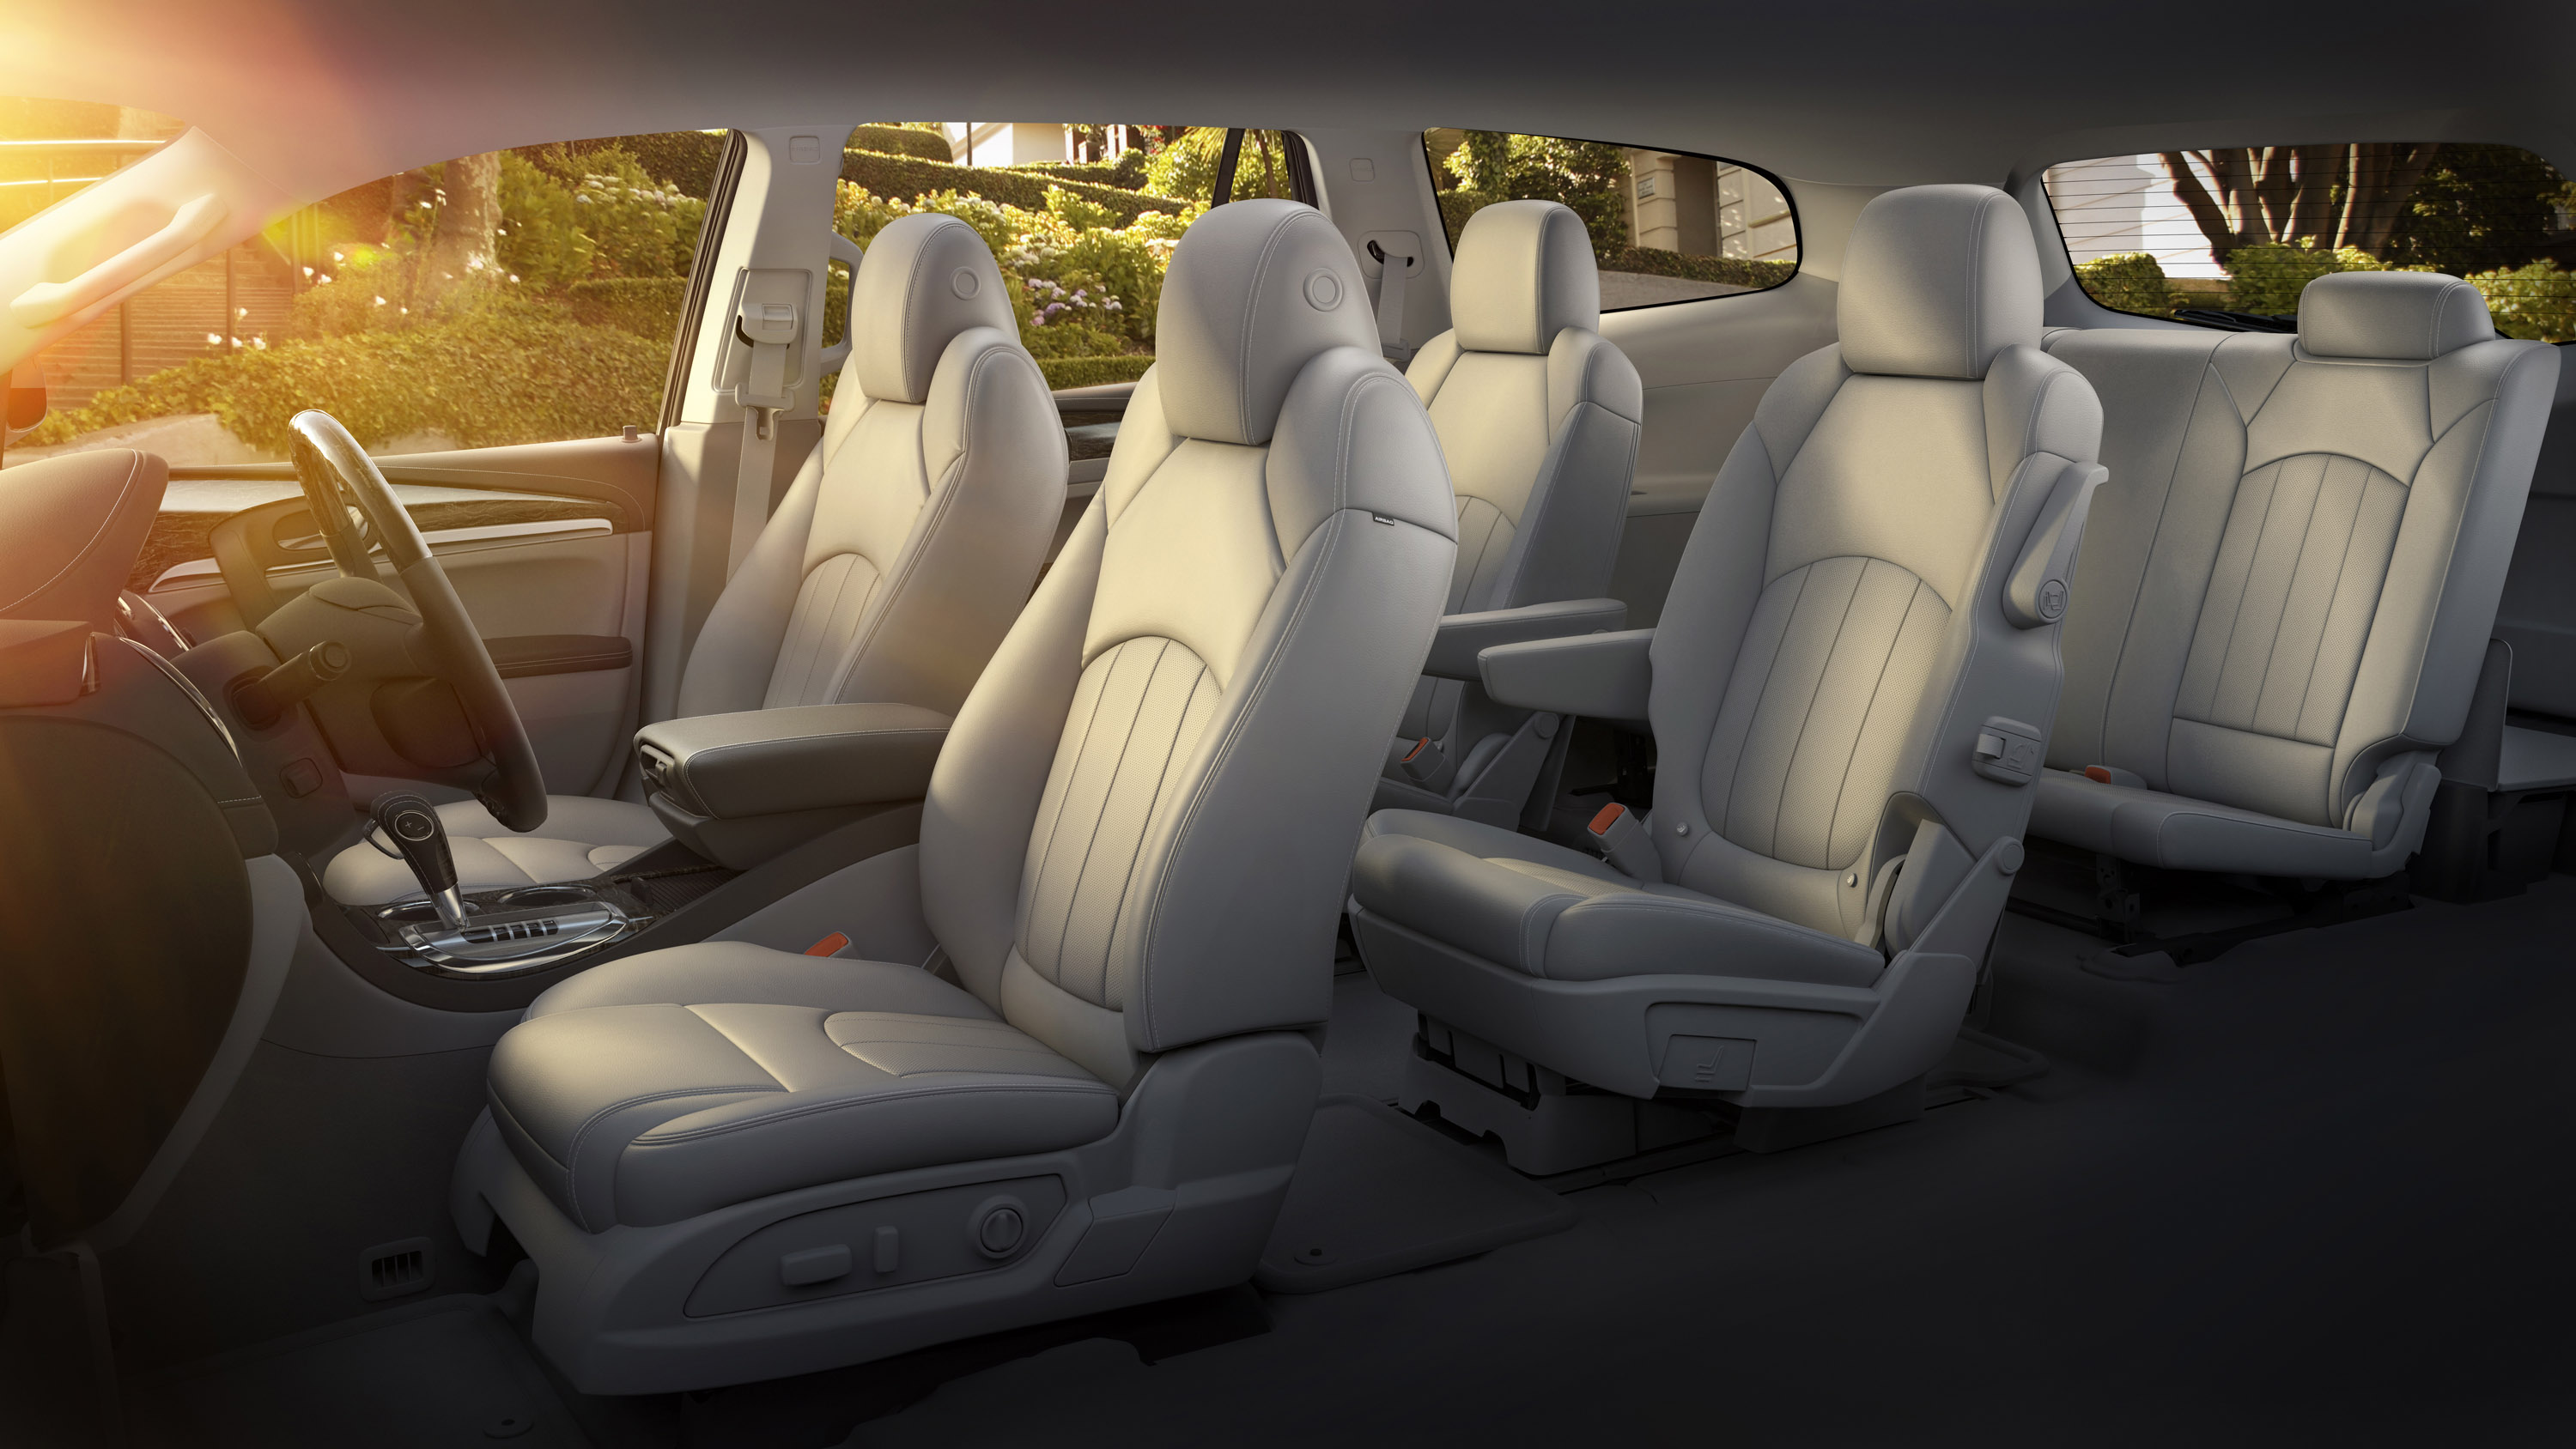 volvo htm used enclave ny centre leather in rockville buick karp at sale suv for